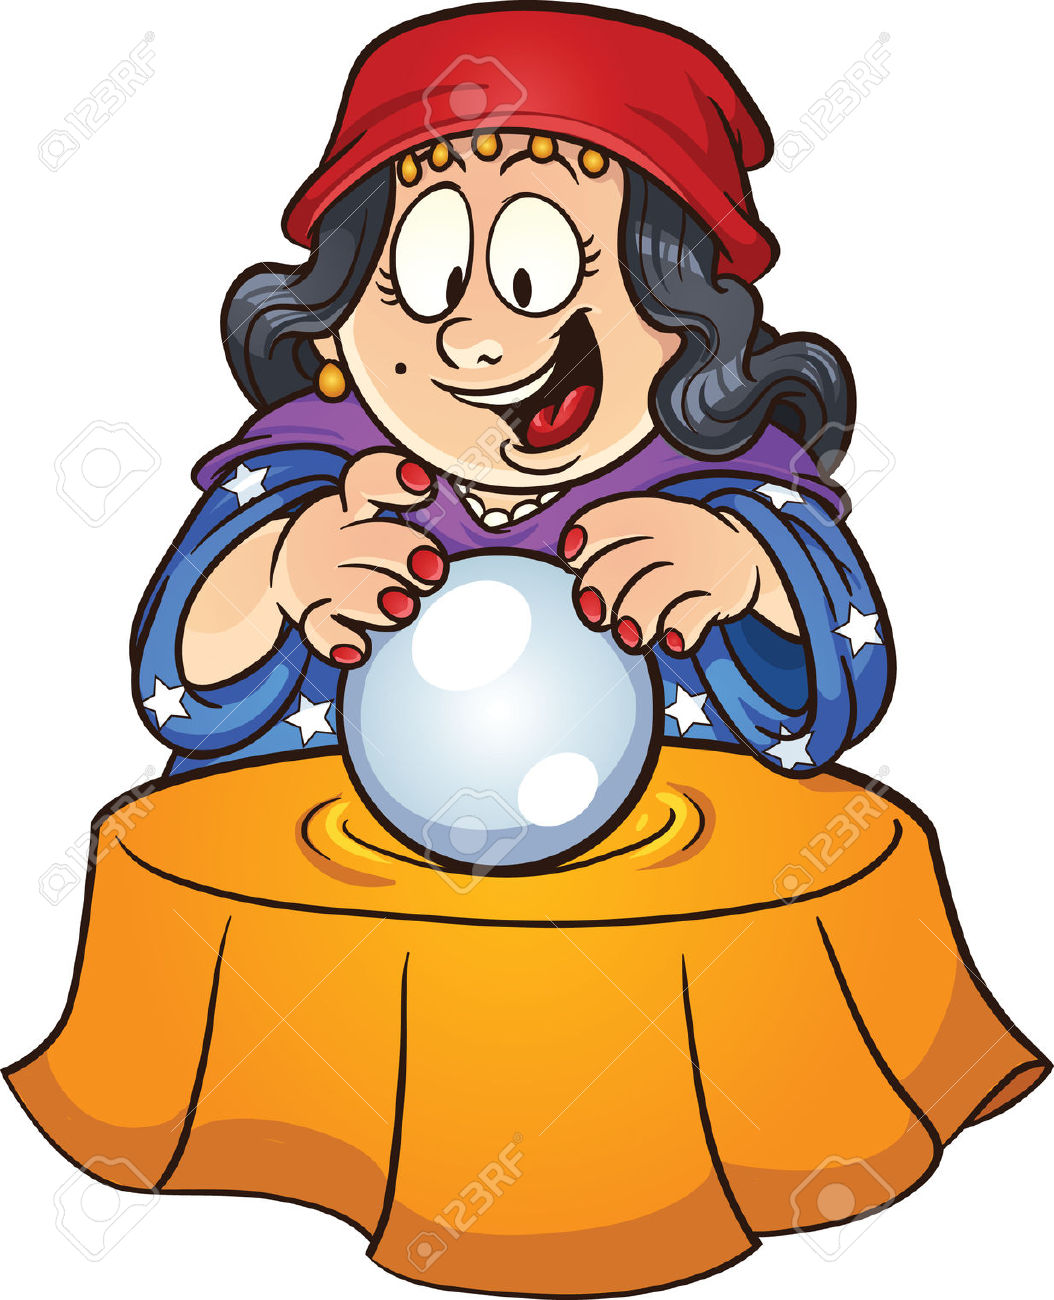 Crystal Ball clipart #9, Download drawings